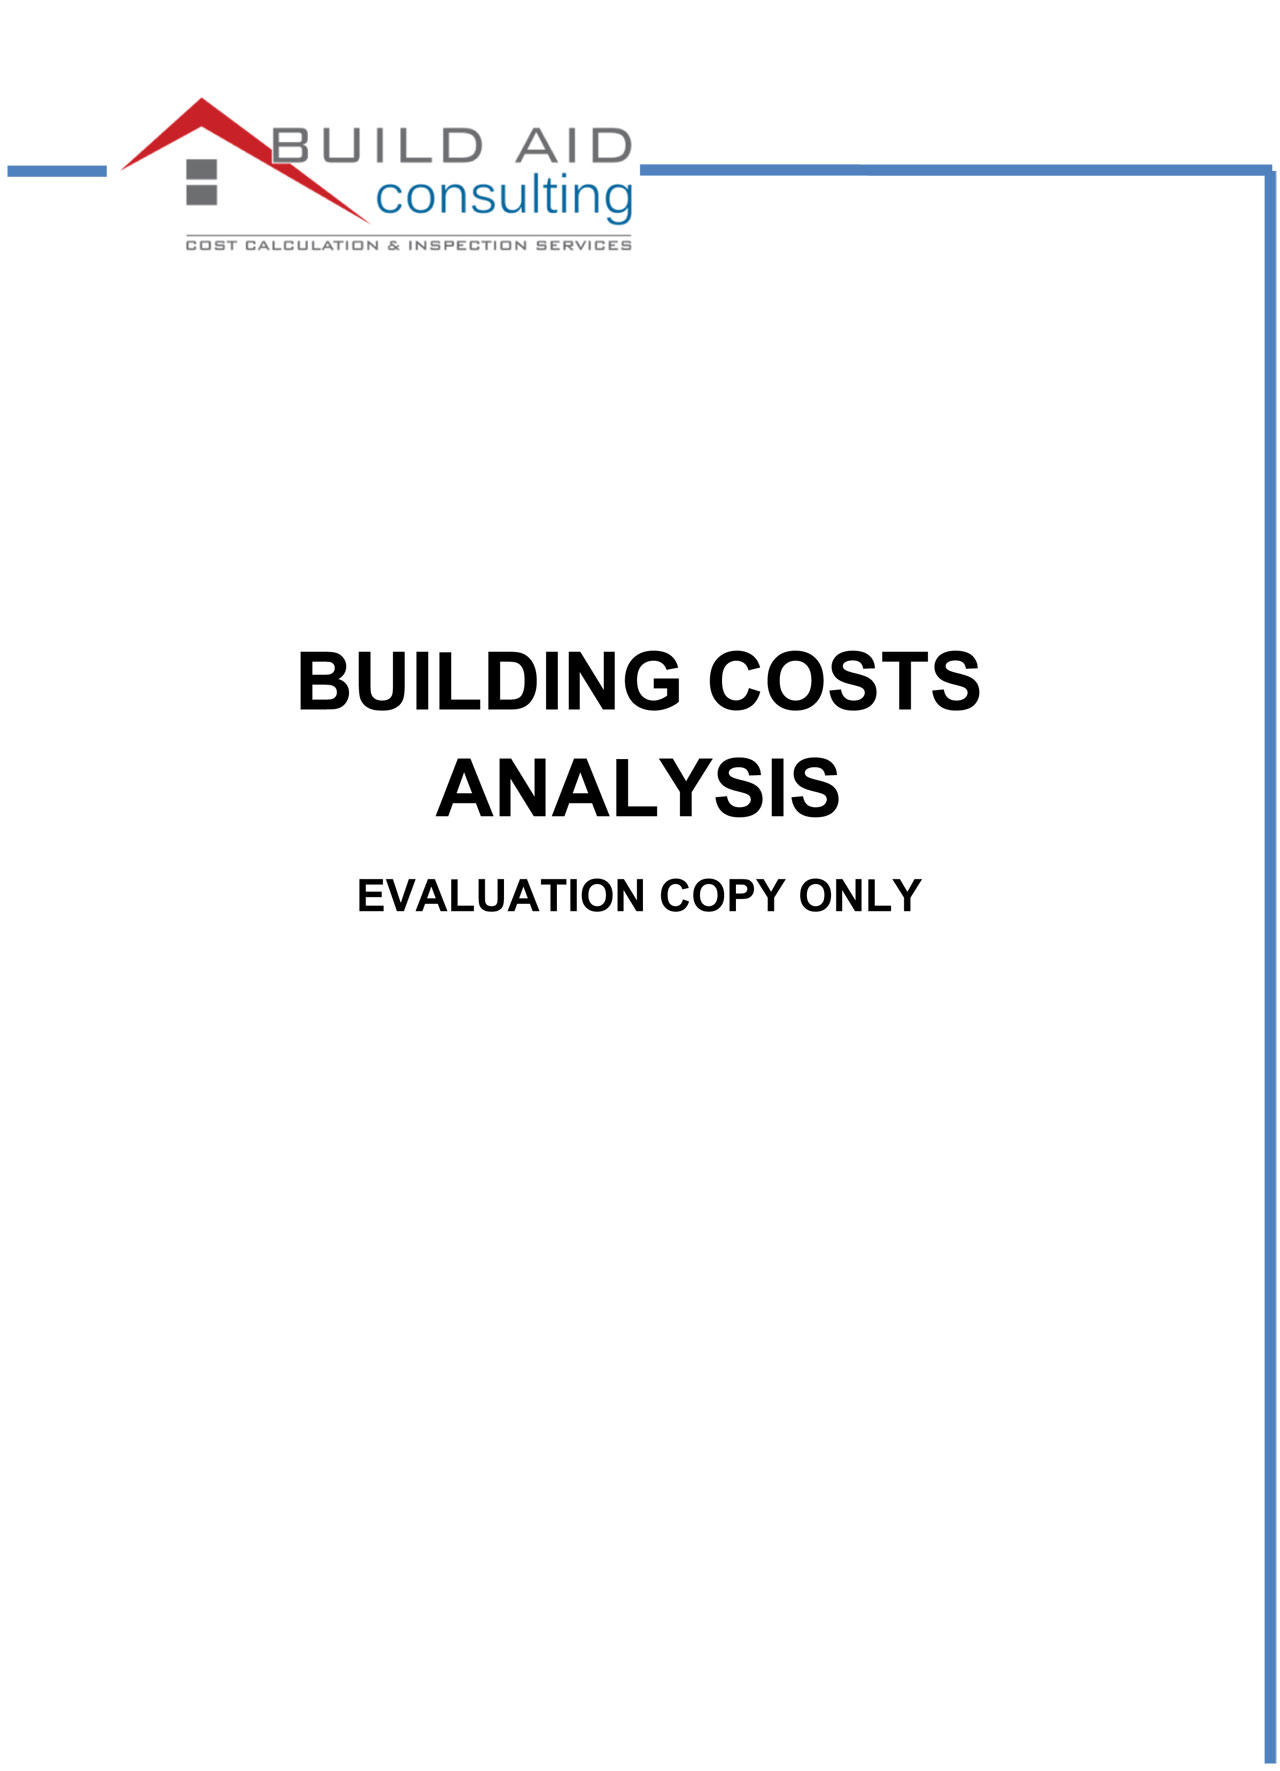 Example Report Build Aid Consulting – Consulting Report